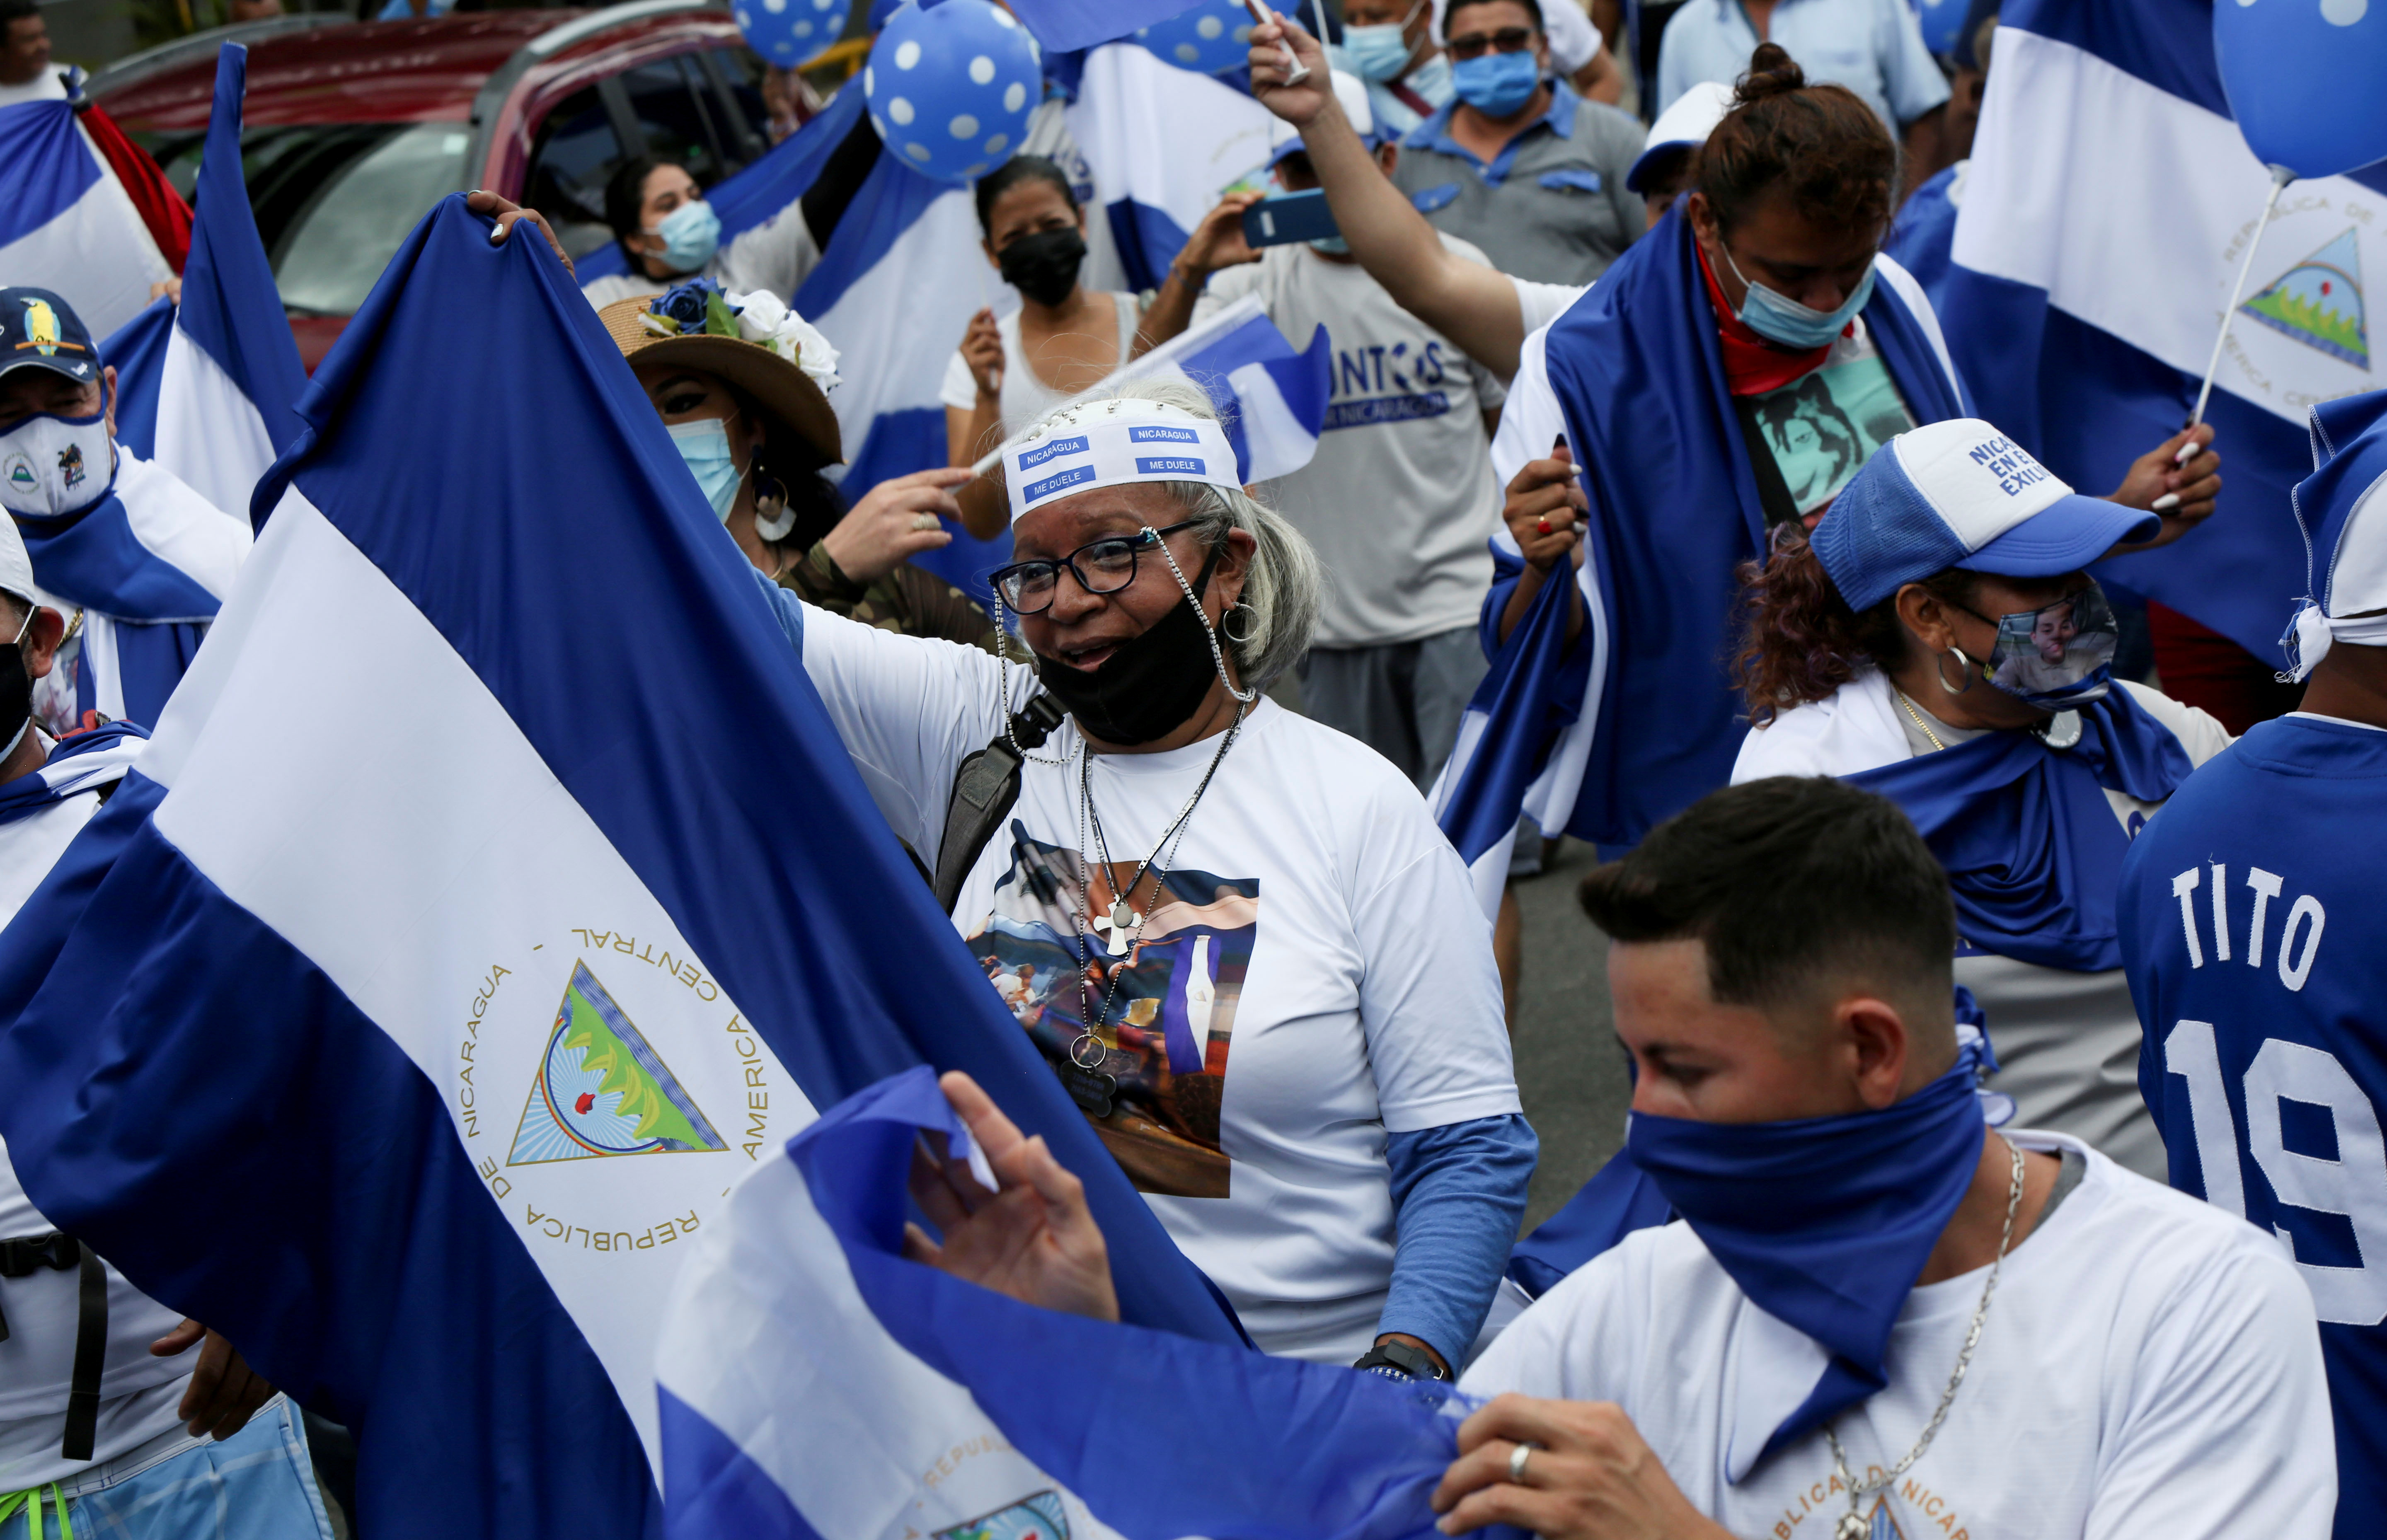 Nicaraguans exiled in Costa Rica protest against the government of President Daniel Ortega, in San Jose, Costa Rica September 12, 2021. REUTERS/Mayela Lopez